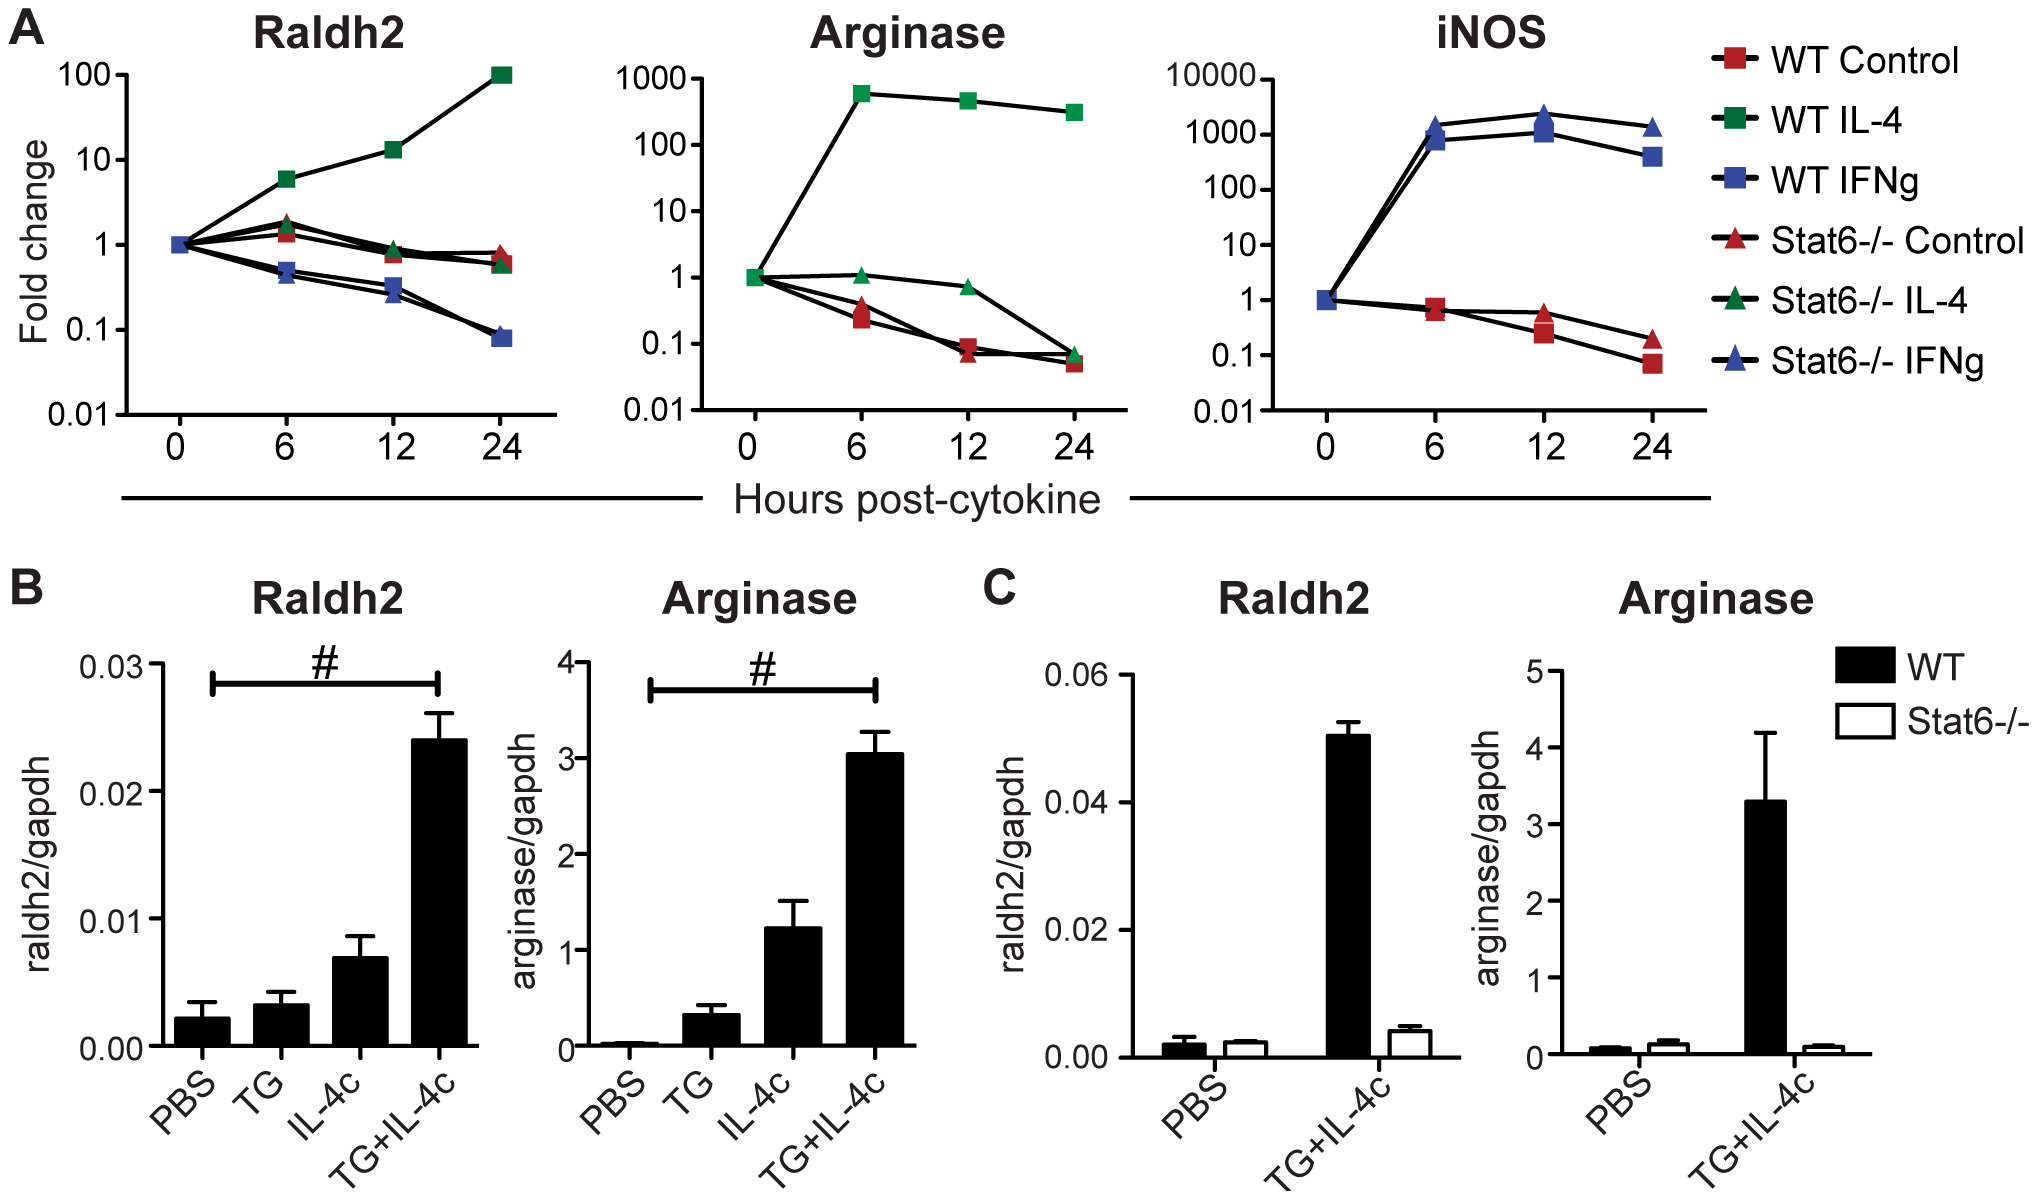 IL-4 induces Stat6-dependent Raldh2 expression in macrophages <i>in vitro</i> and <i>in vivo</i>.